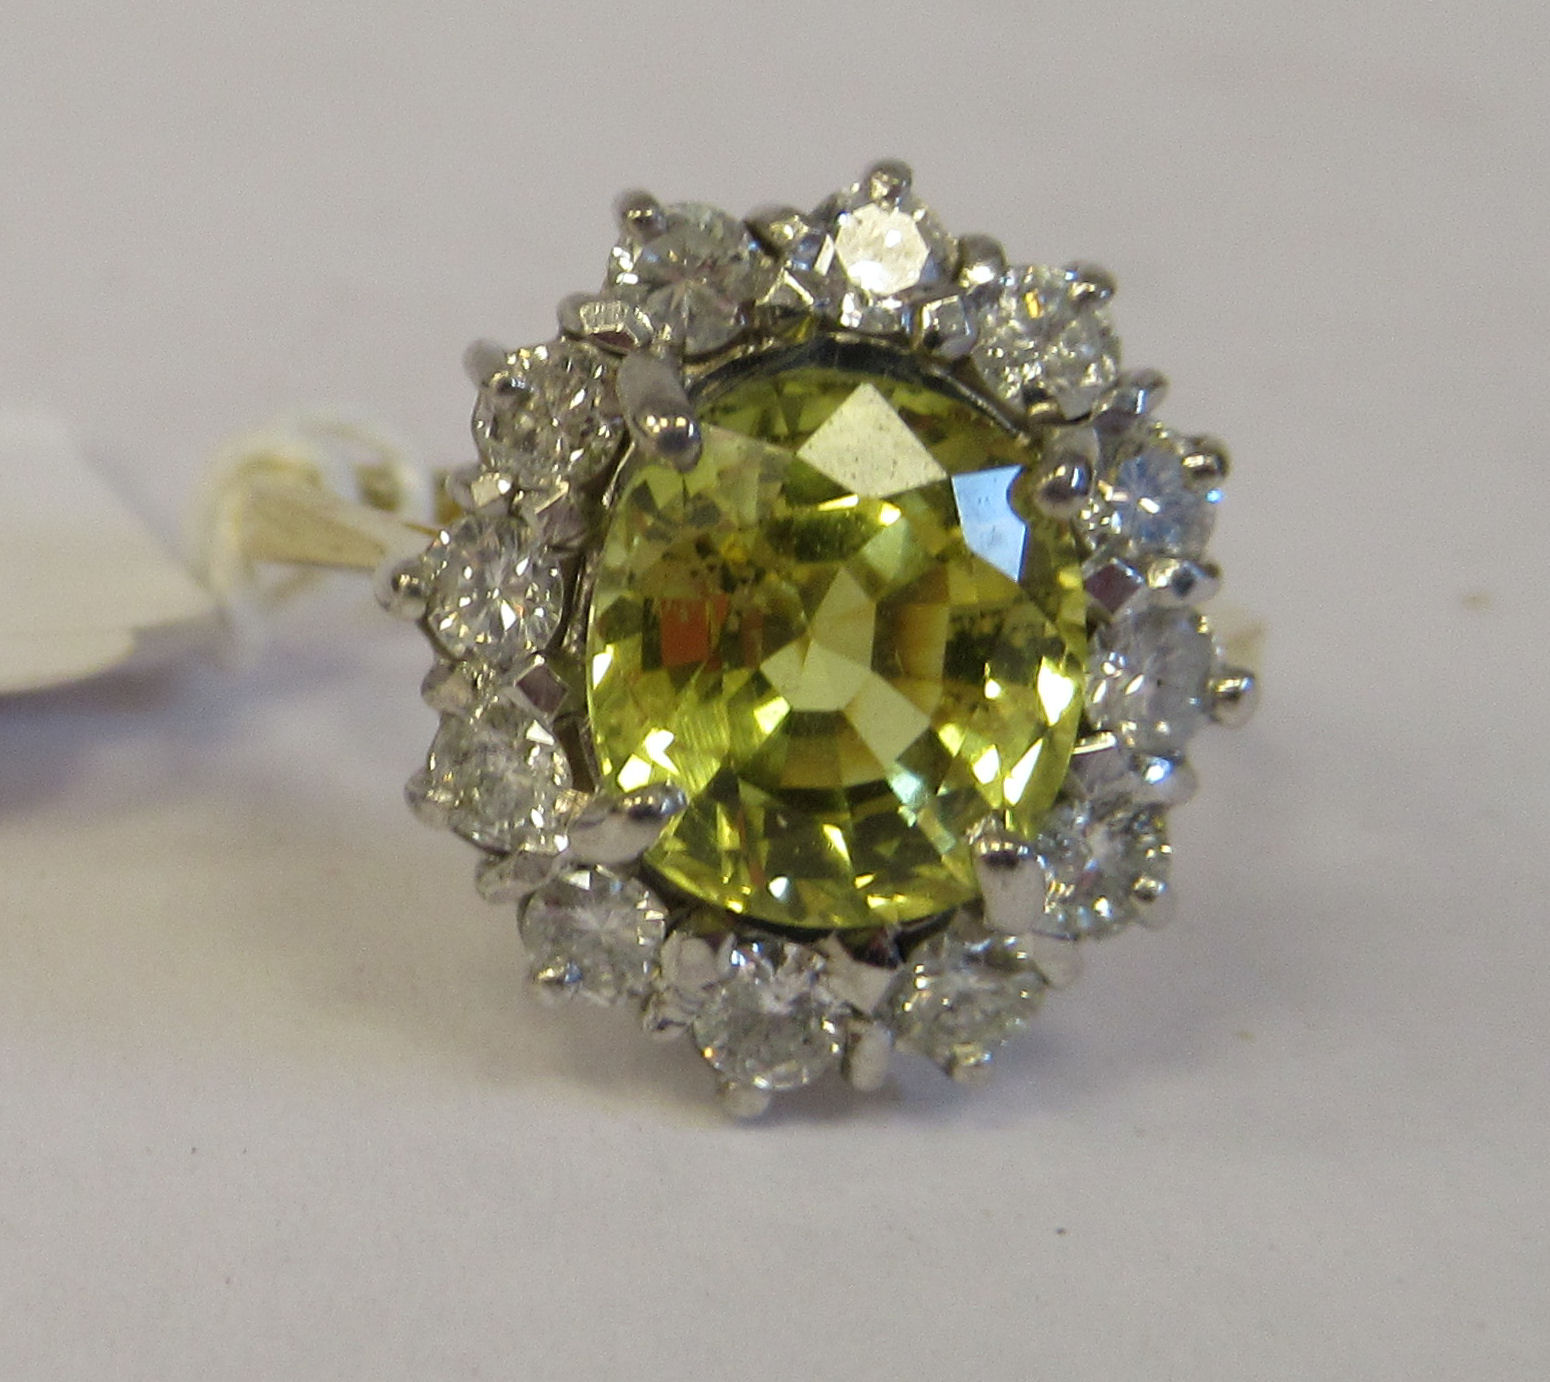 An 18ct gold cluster ring, claw set with a mild yellow Ceylon sapphire, set within a twelve stone